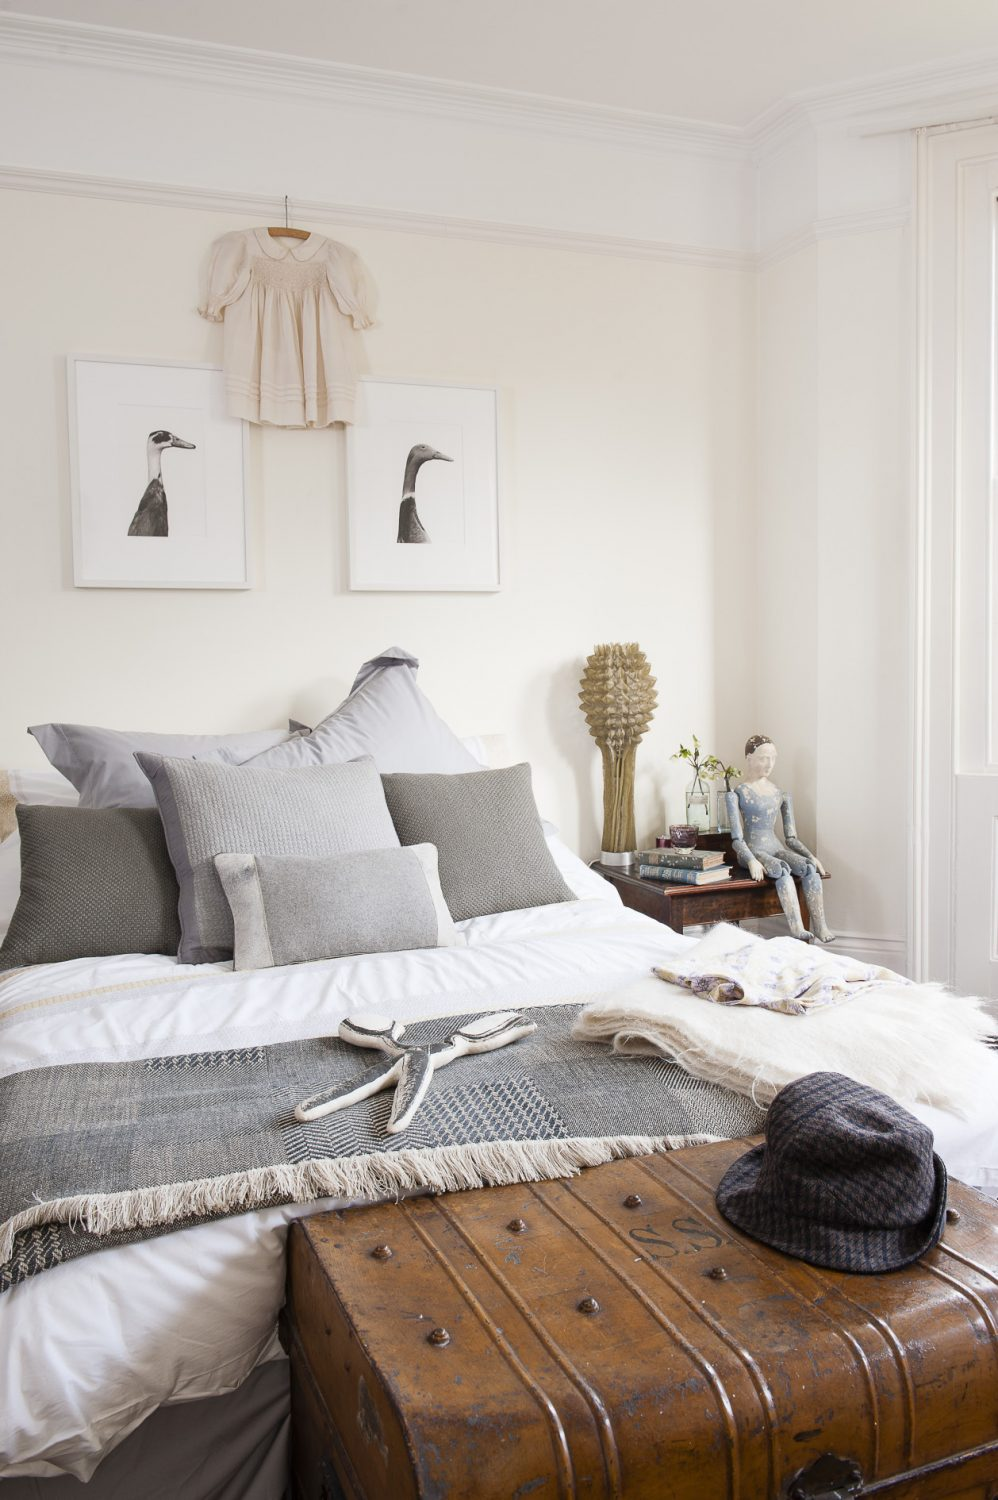 A pair of beautifully illustrated Indian Runner ducks are mounted above the bed in the master bedroom, fitting in perfectly with the room's cool greys and crisp whites